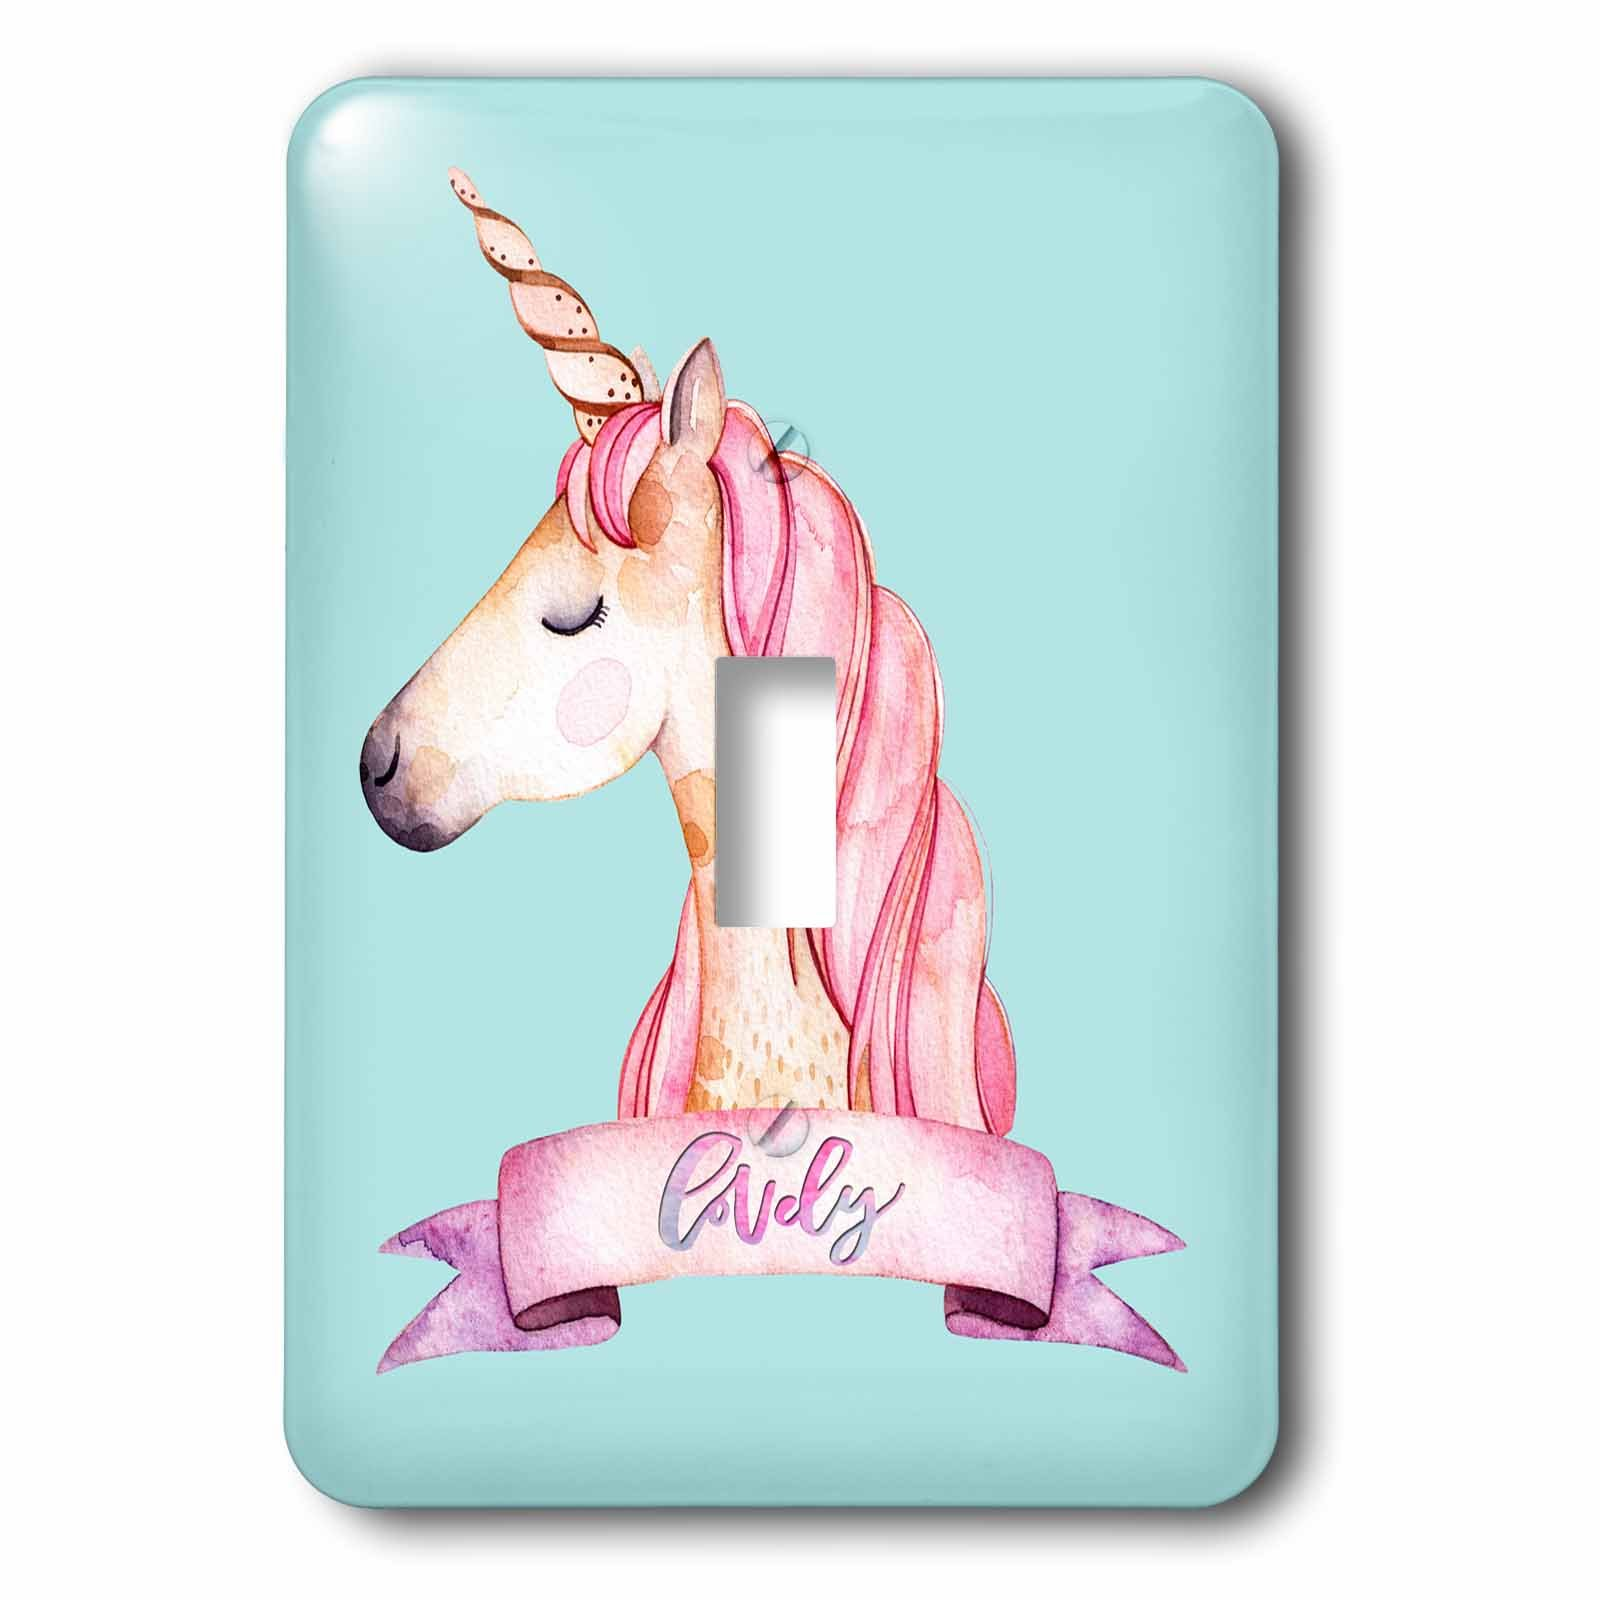 3dRose Uta Naumann Watercolor Illustration Animal - Blue Girl Unicorn Illustration and Pink Typography -Lovely - Light Switch Covers - single toggle switch (lsp_268873_1)